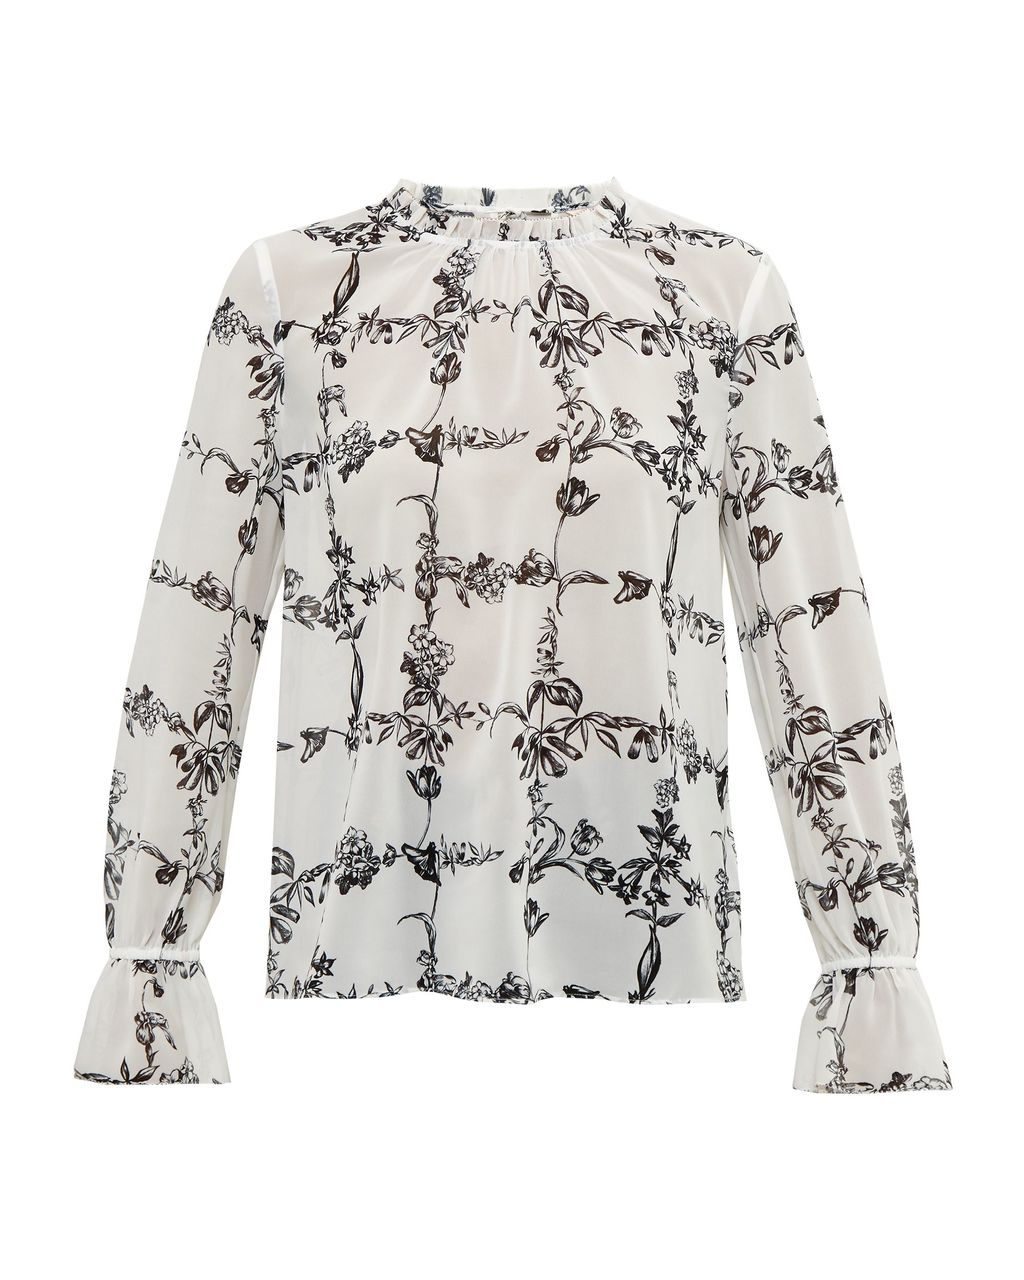 Weerah Floral High Neck Shirt, Cream - style: blouse; sleeve style: volant; predominant colour: white; secondary colour: black; occasions: casual, creative work; length: standard; fibres: silk - 100%; fit: loose; neckline: crew; sleeve length: long sleeve; trends: monochrome; texture group: silky - light; pattern type: fabric; pattern size: standard; pattern: florals; season: a/w 2016; wardrobe: highlight